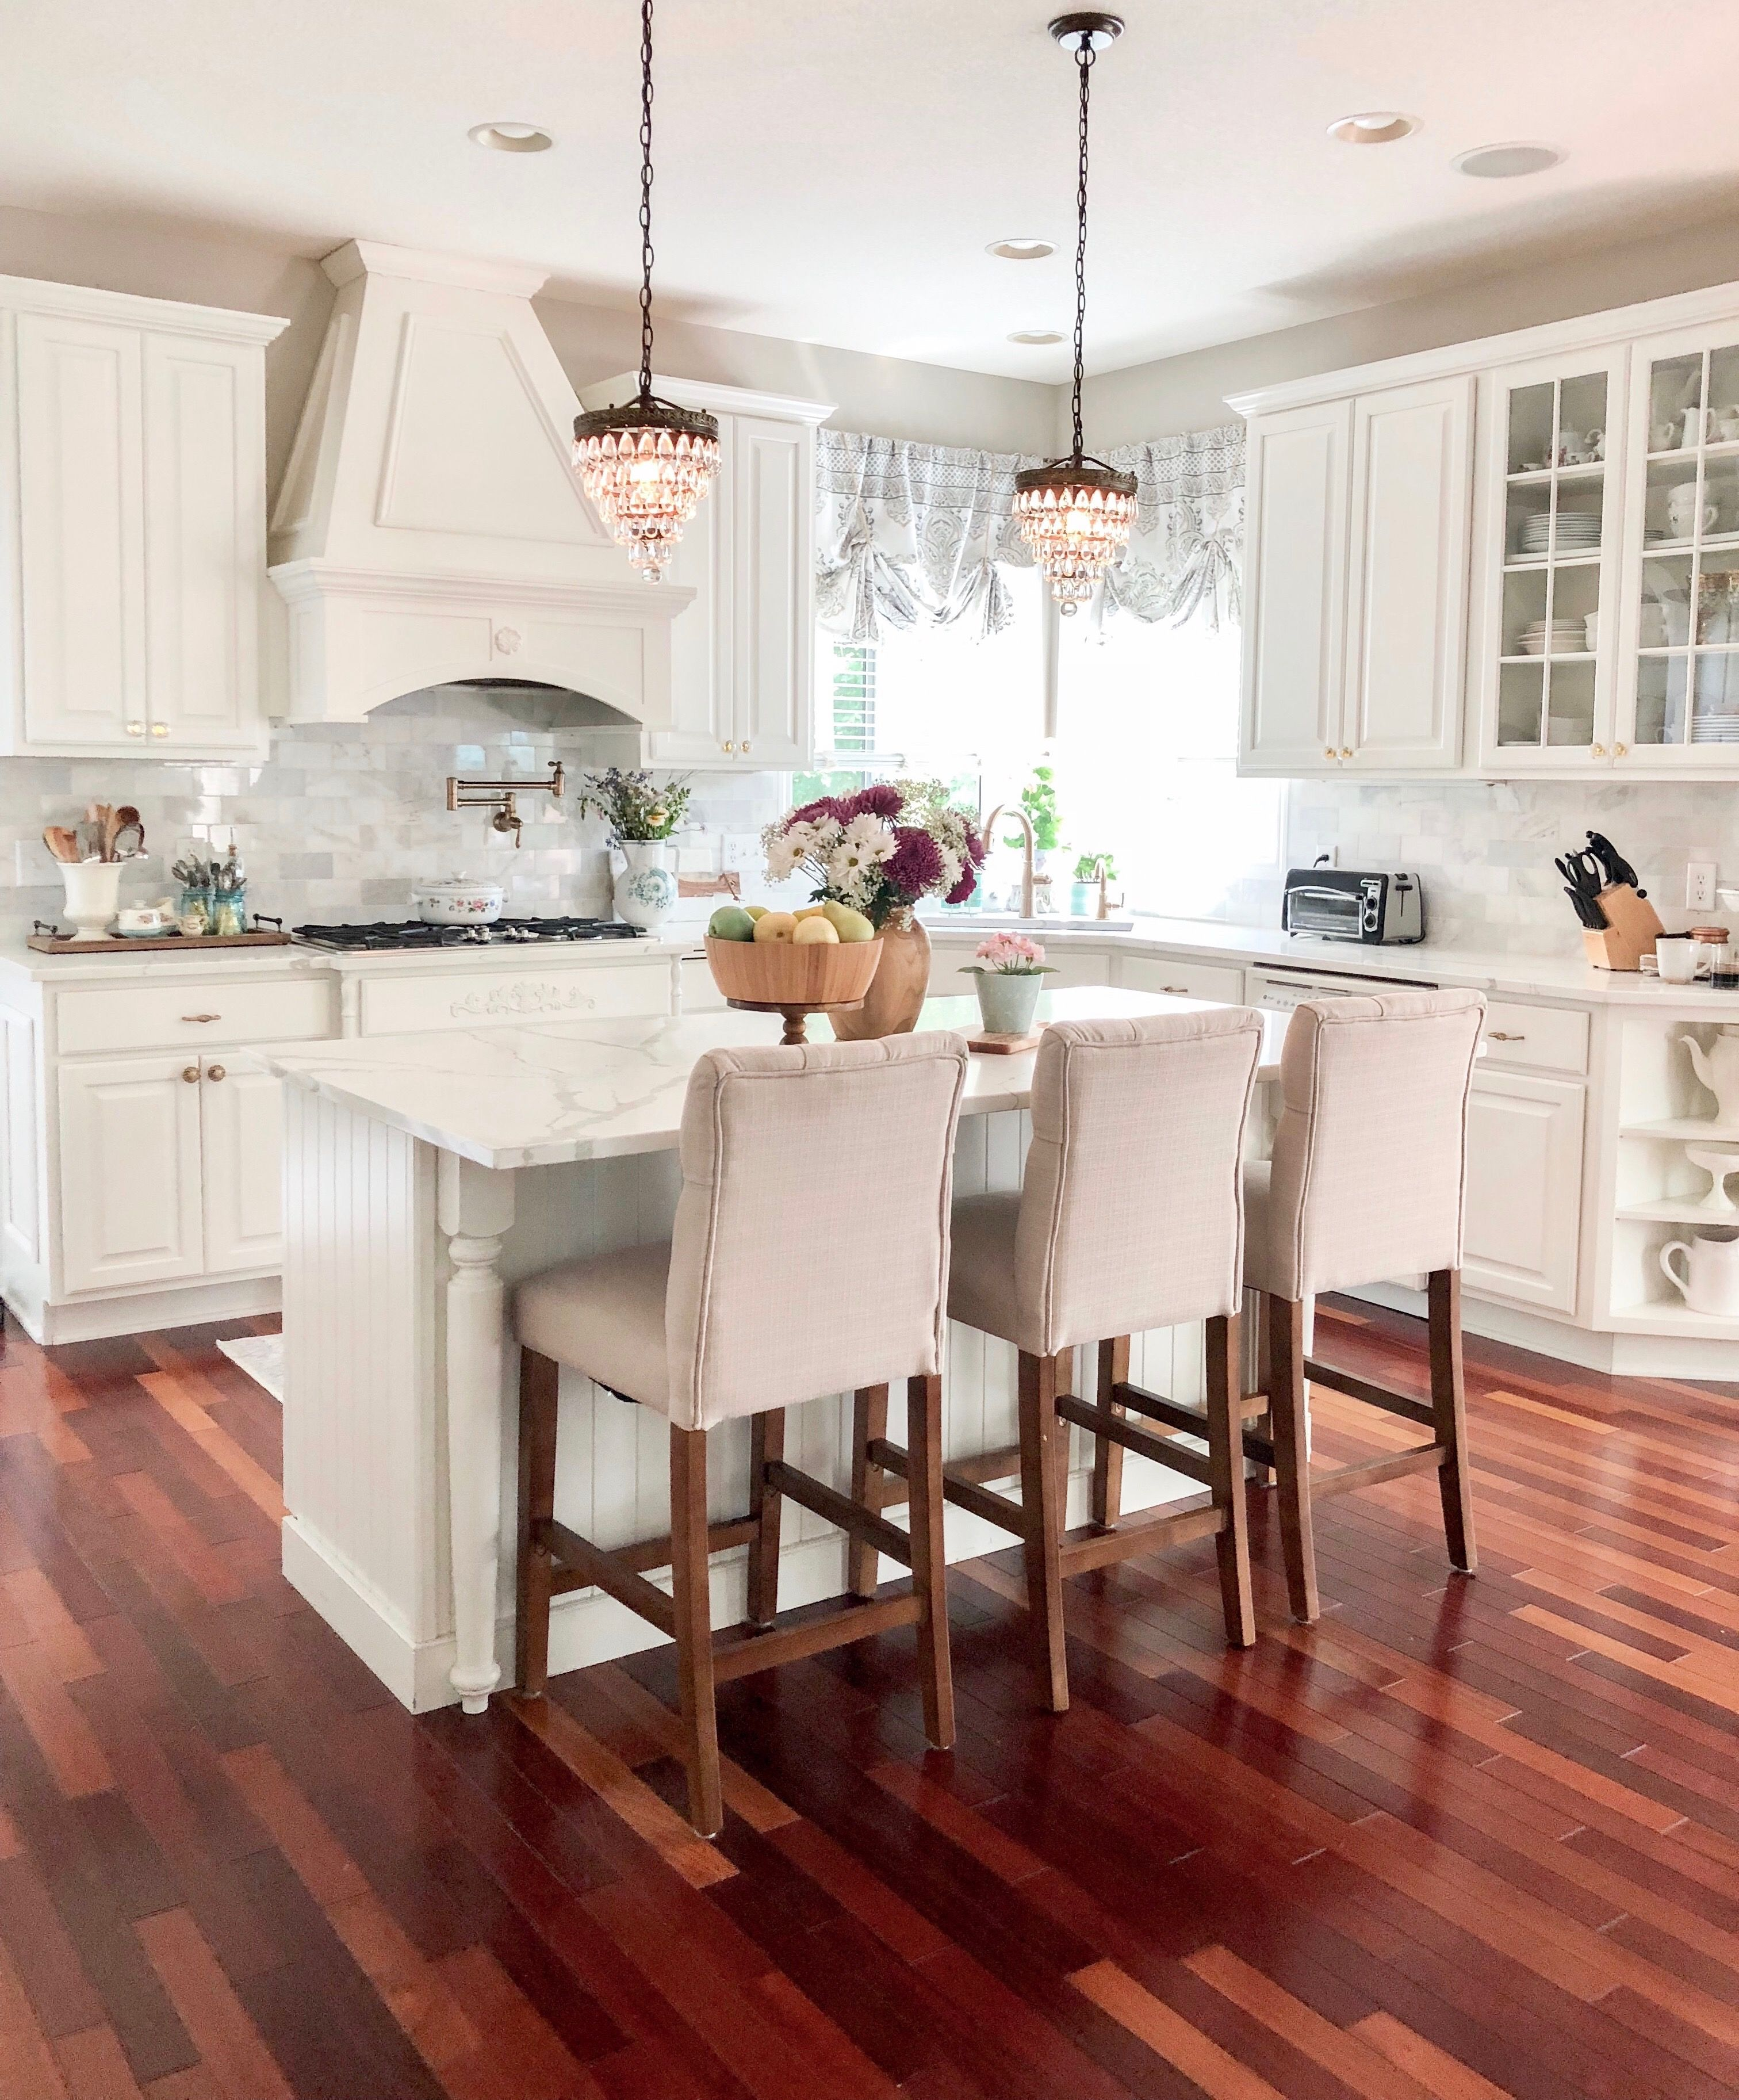 New Hard Wood Floors Selection Process   Styled With Lace   Wood ...